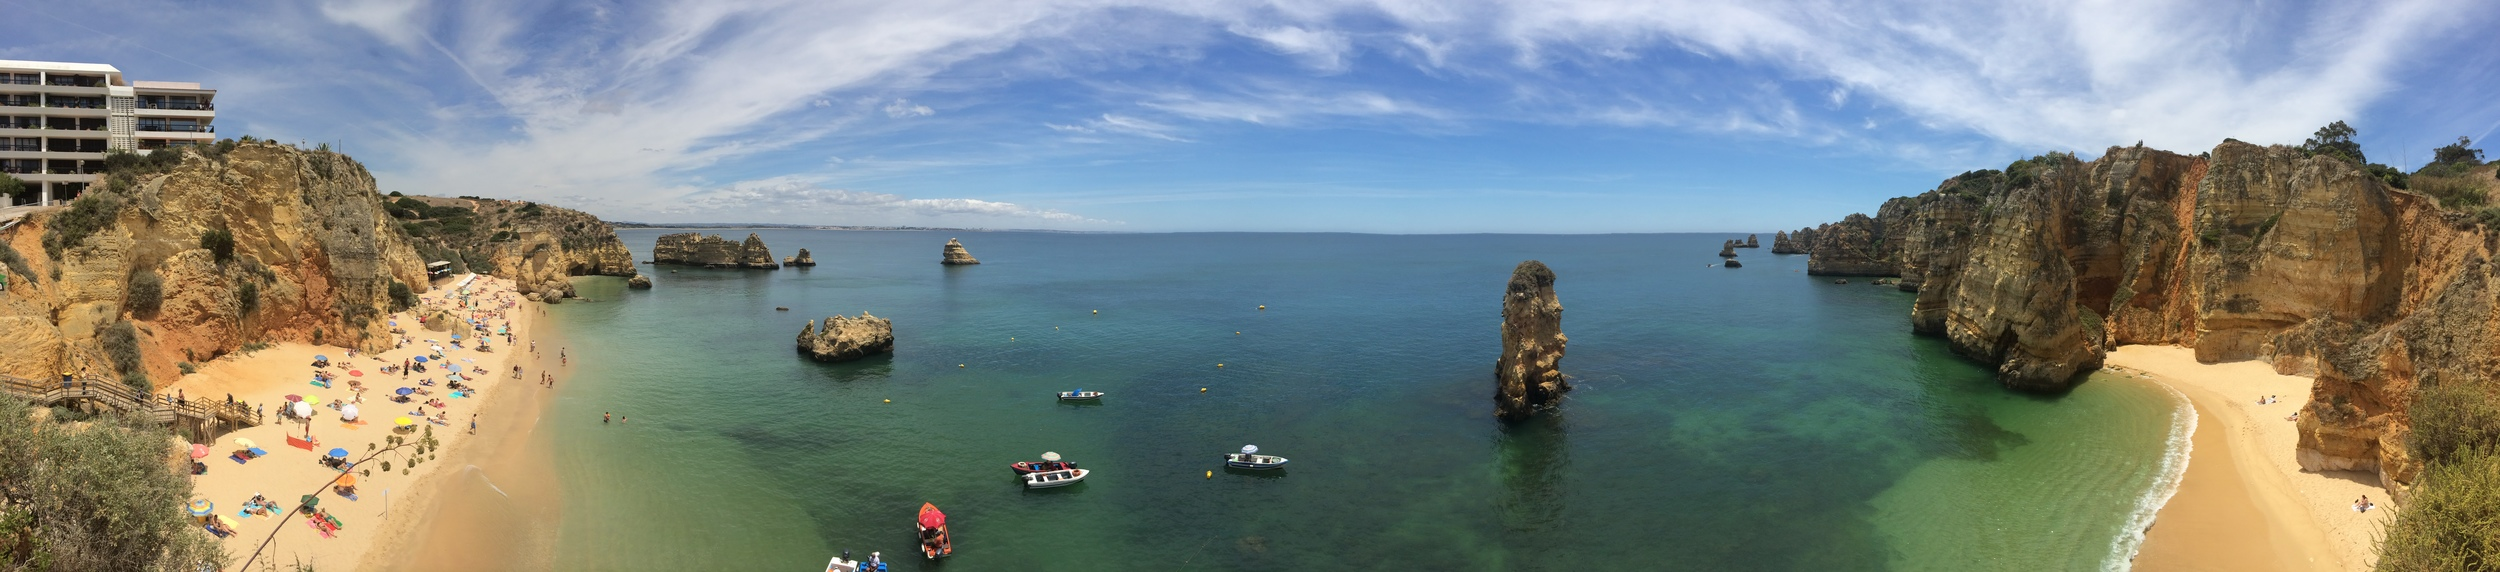 Panoramic shot from one of the numerous cliffs... every single vantage point looked this beautiful.